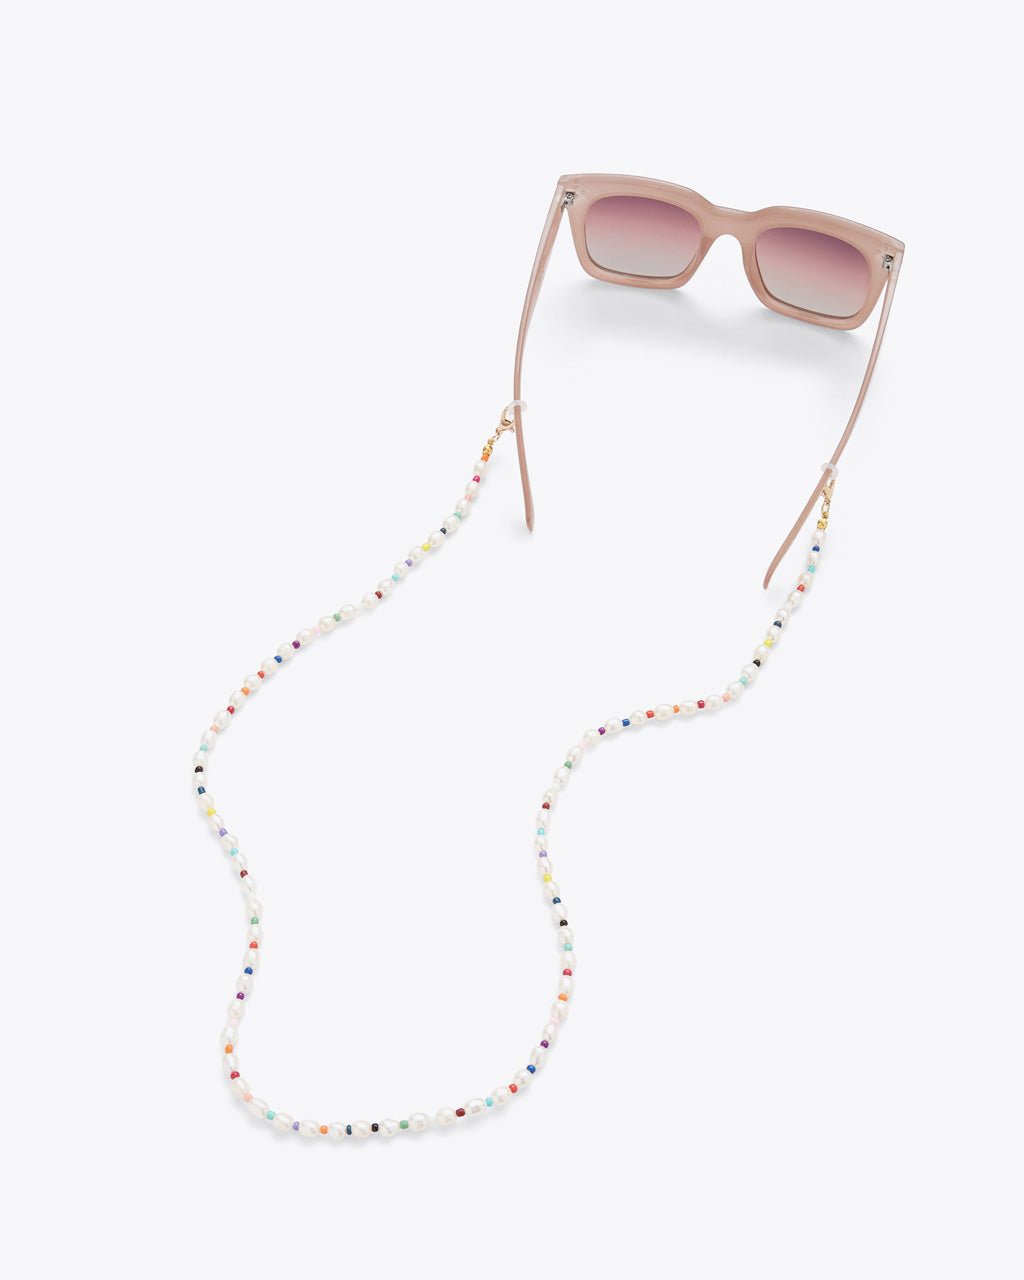 beaded accessory chain shown with sunglasses